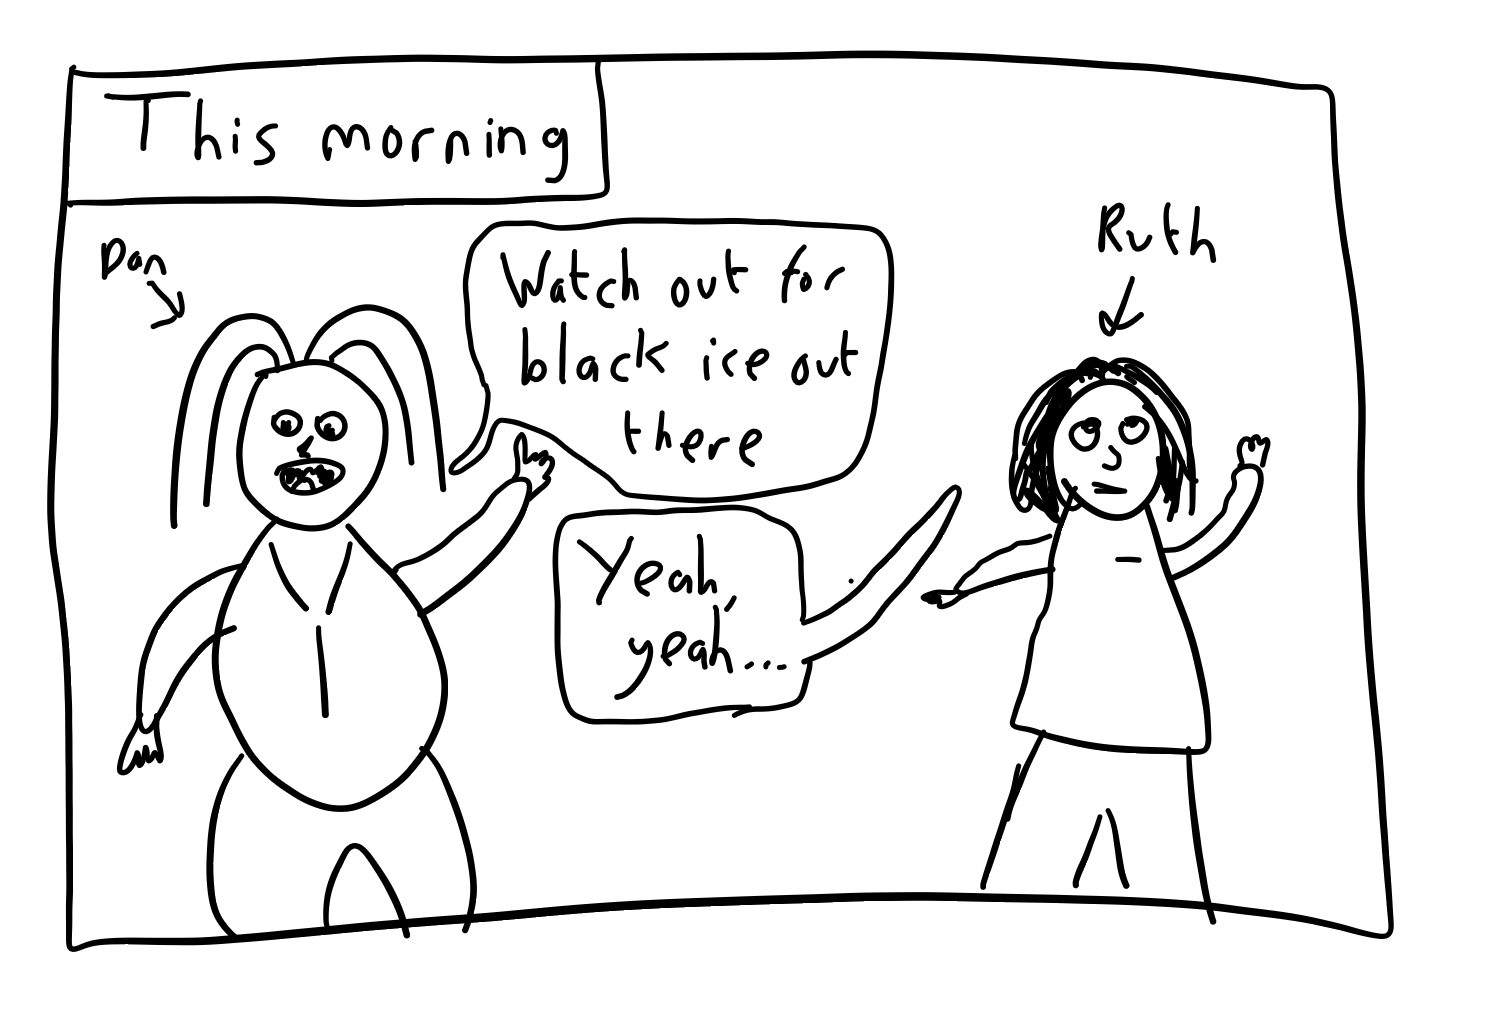 MS Paint-grade comic showing Dan warning Ruth about black ice, and Ruth being dismissive of it.